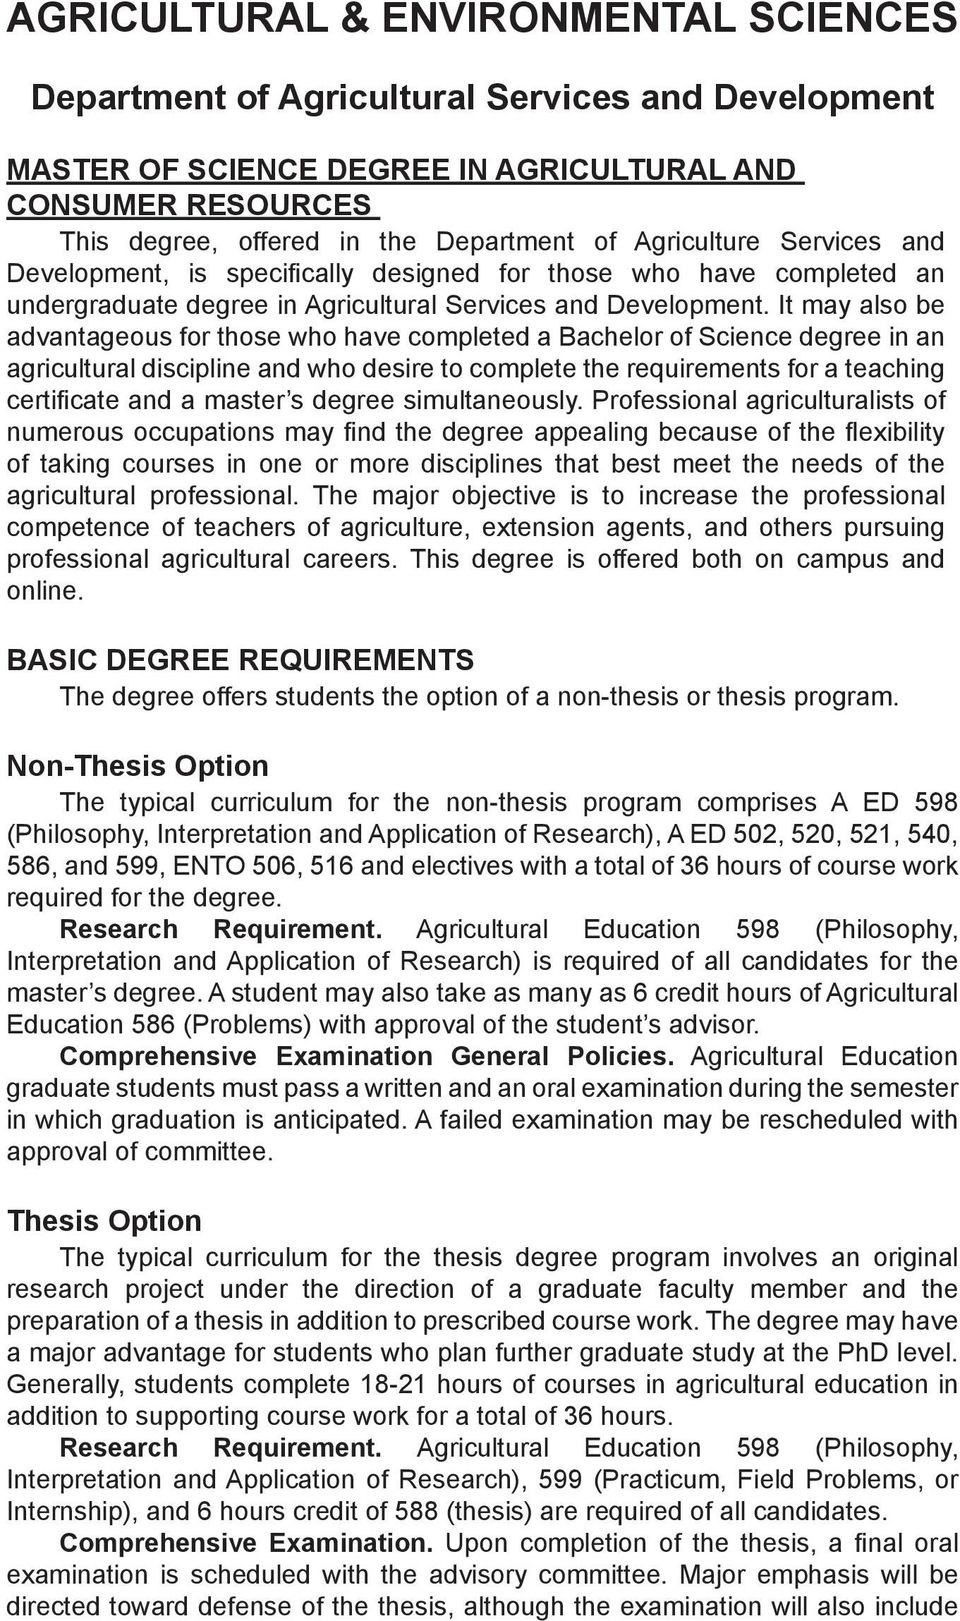 It may also be advantageous for those who have completed a Bachelor of Science degree in an agricultural discipline and who desire to complete the requirements for a teaching certificate and a master